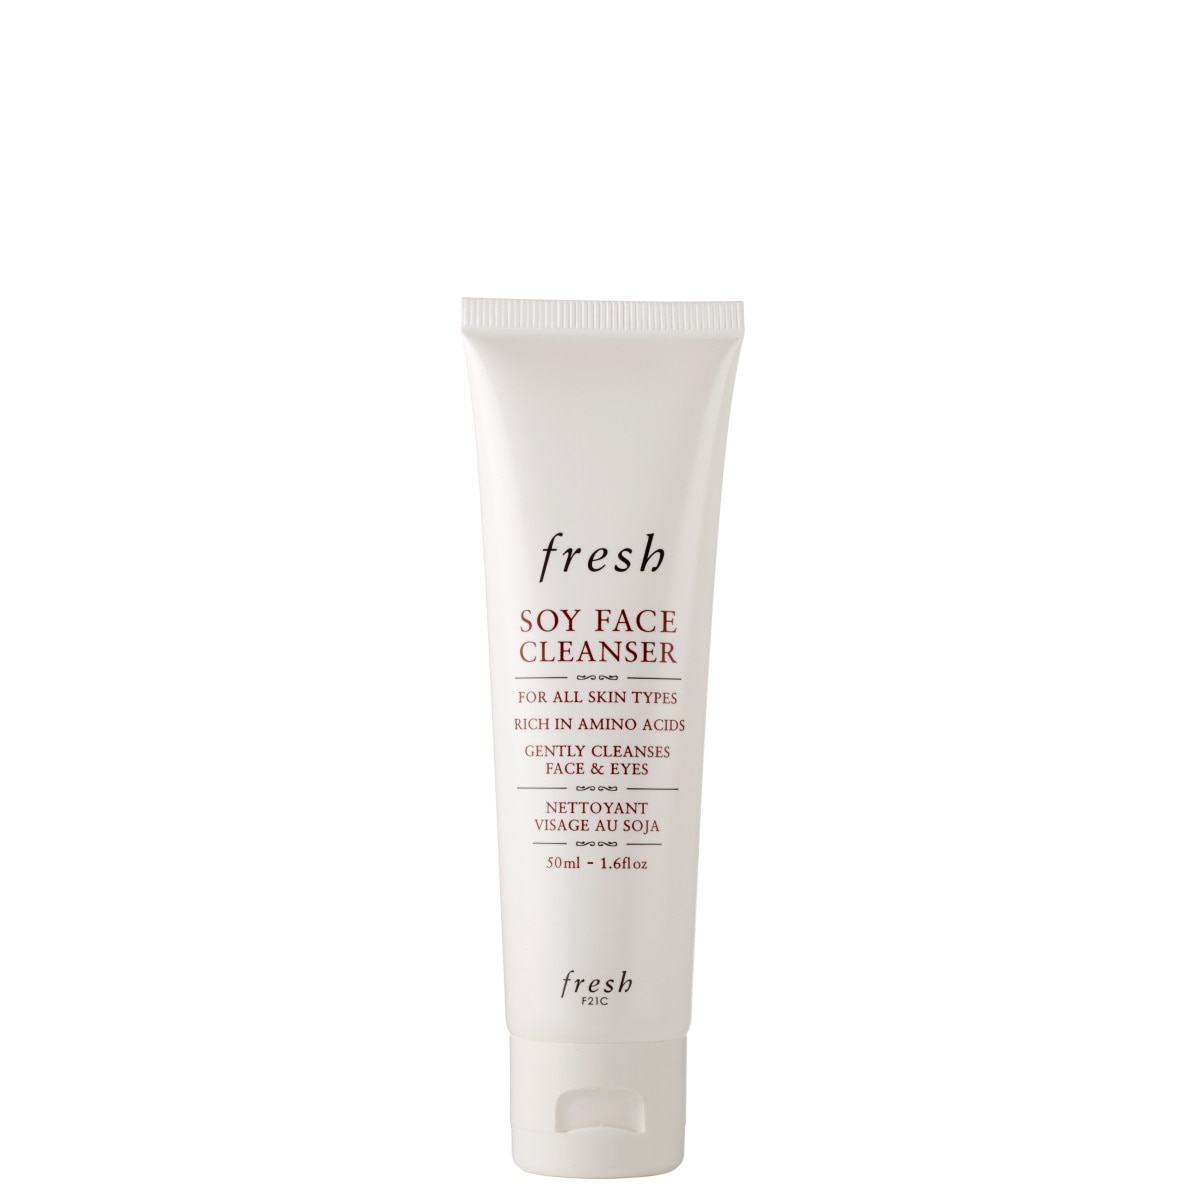 SOY FACE CLEANSER TRAVEL SIZE